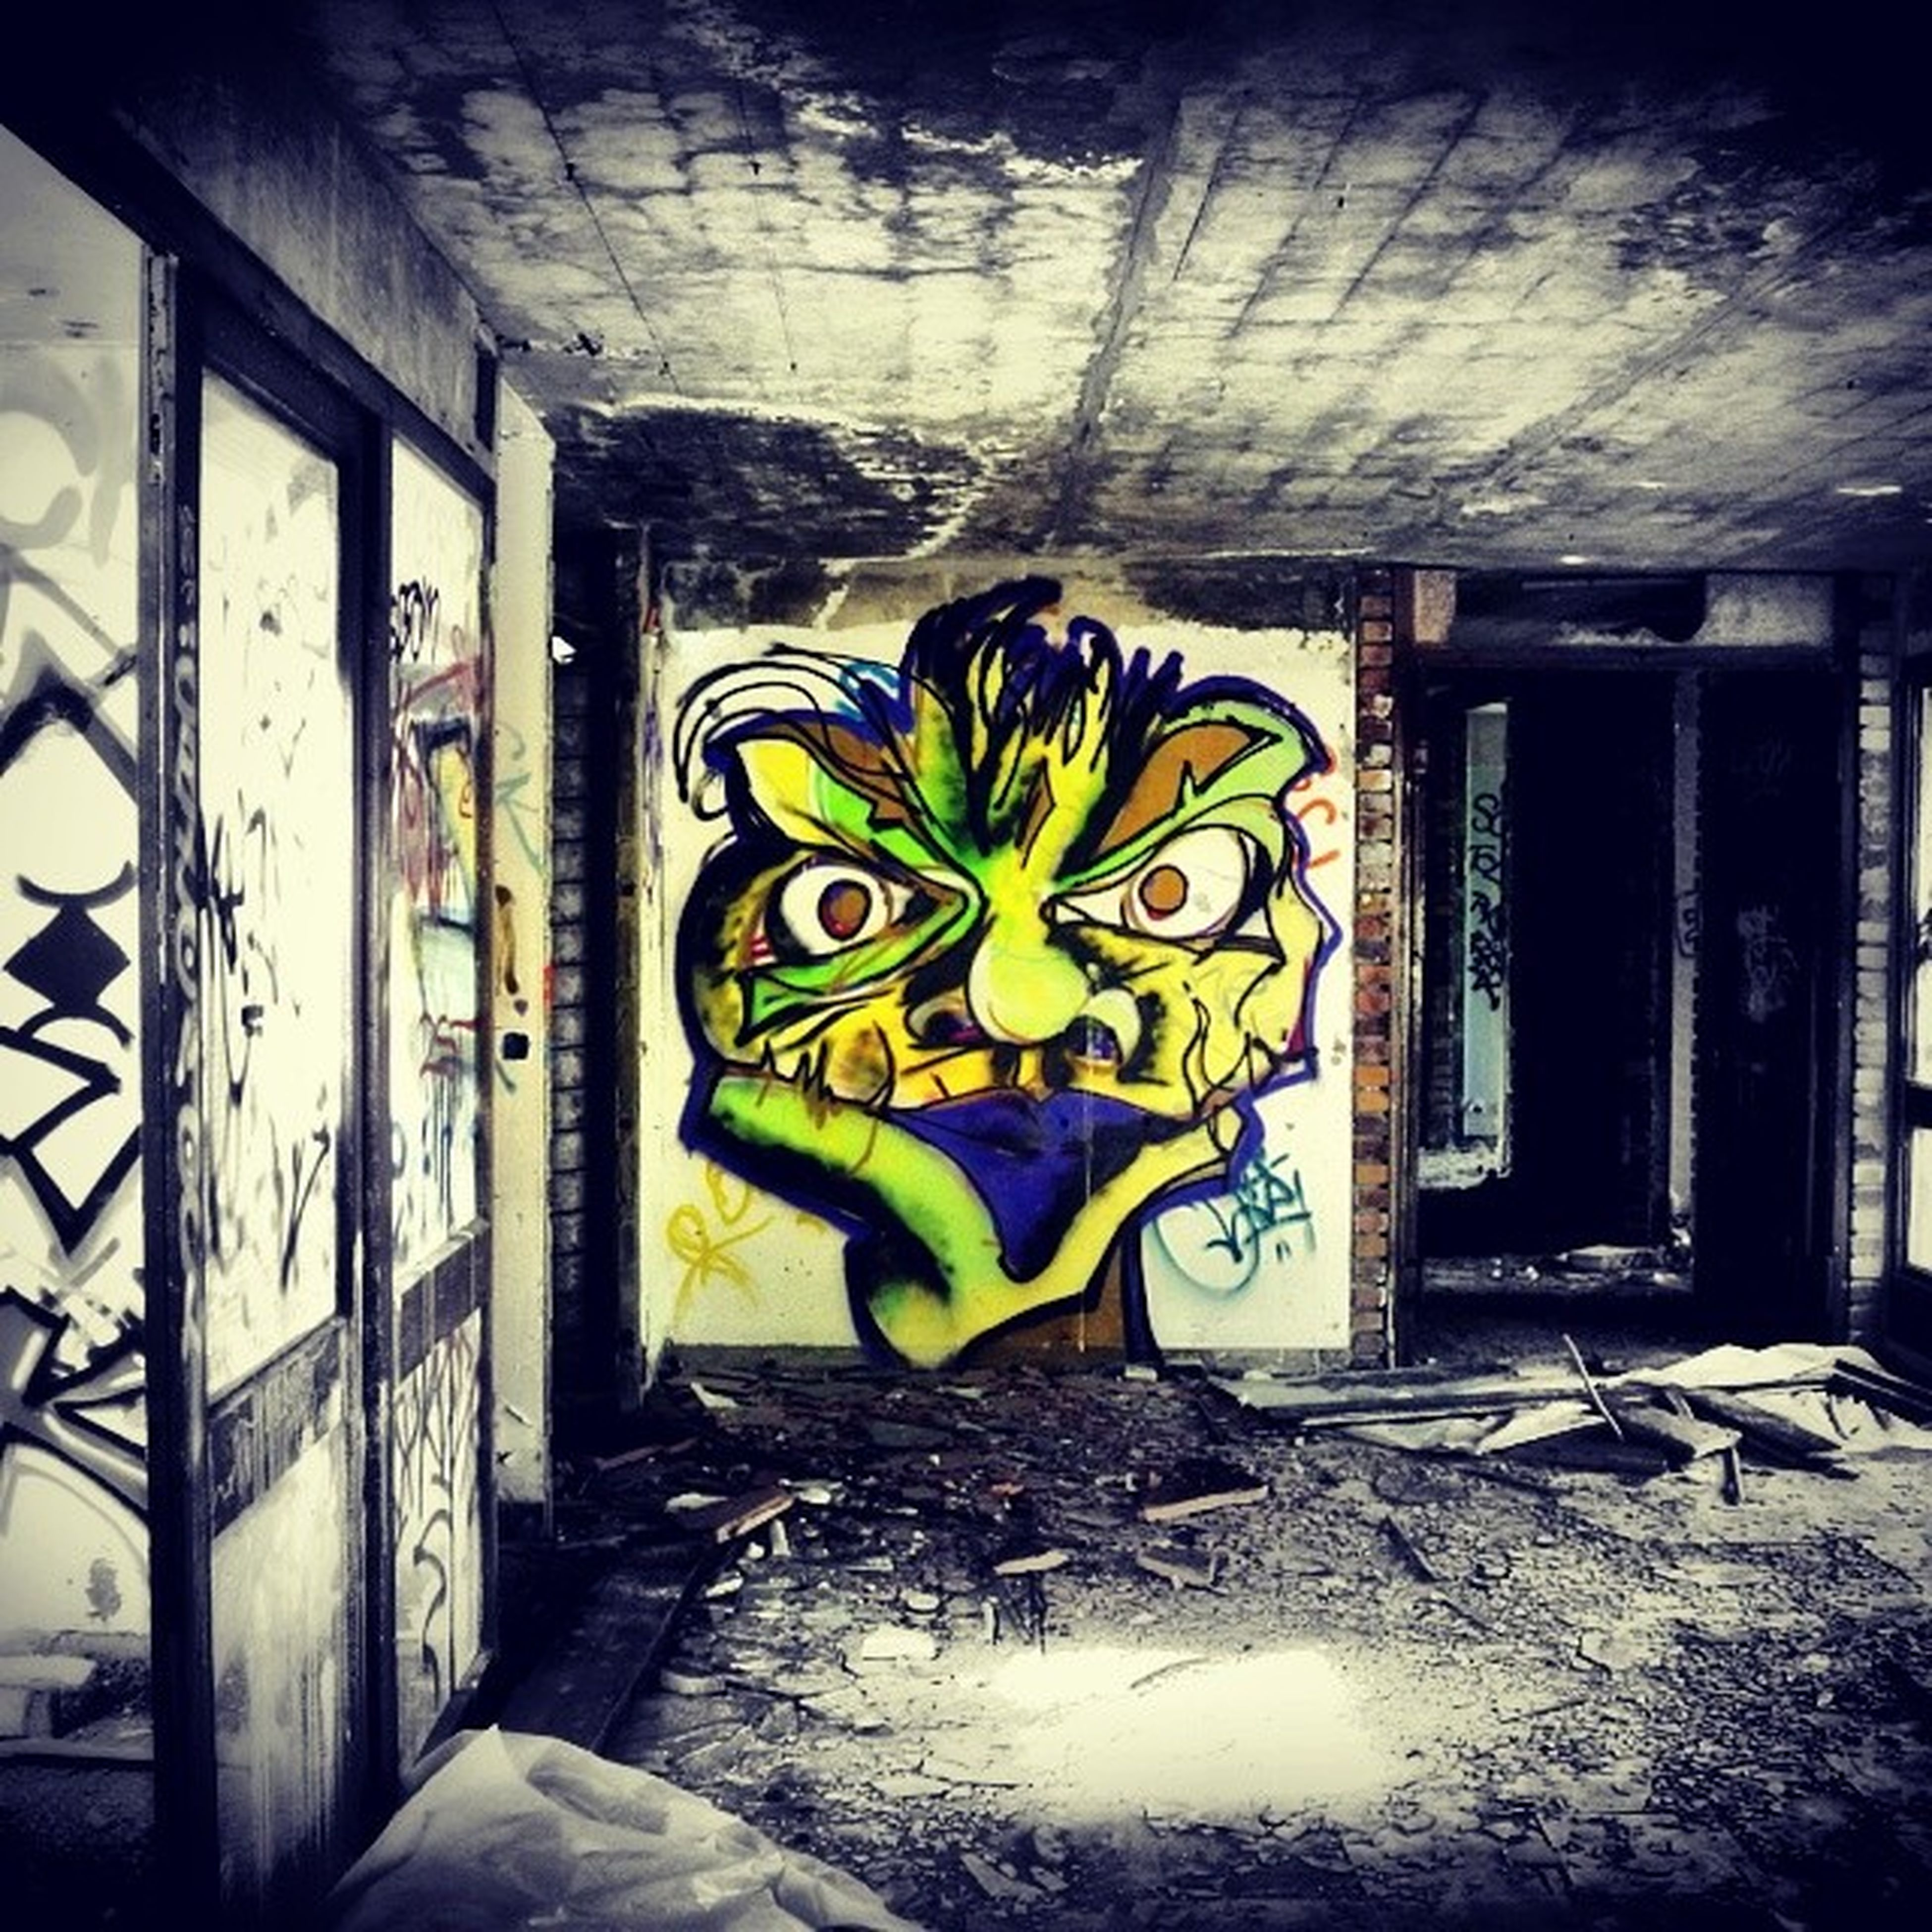 graffiti, art, art and craft, indoors, creativity, architecture, built structure, wall - building feature, human representation, wall, abandoned, multi colored, mural, ceiling, door, design, old, window, no people